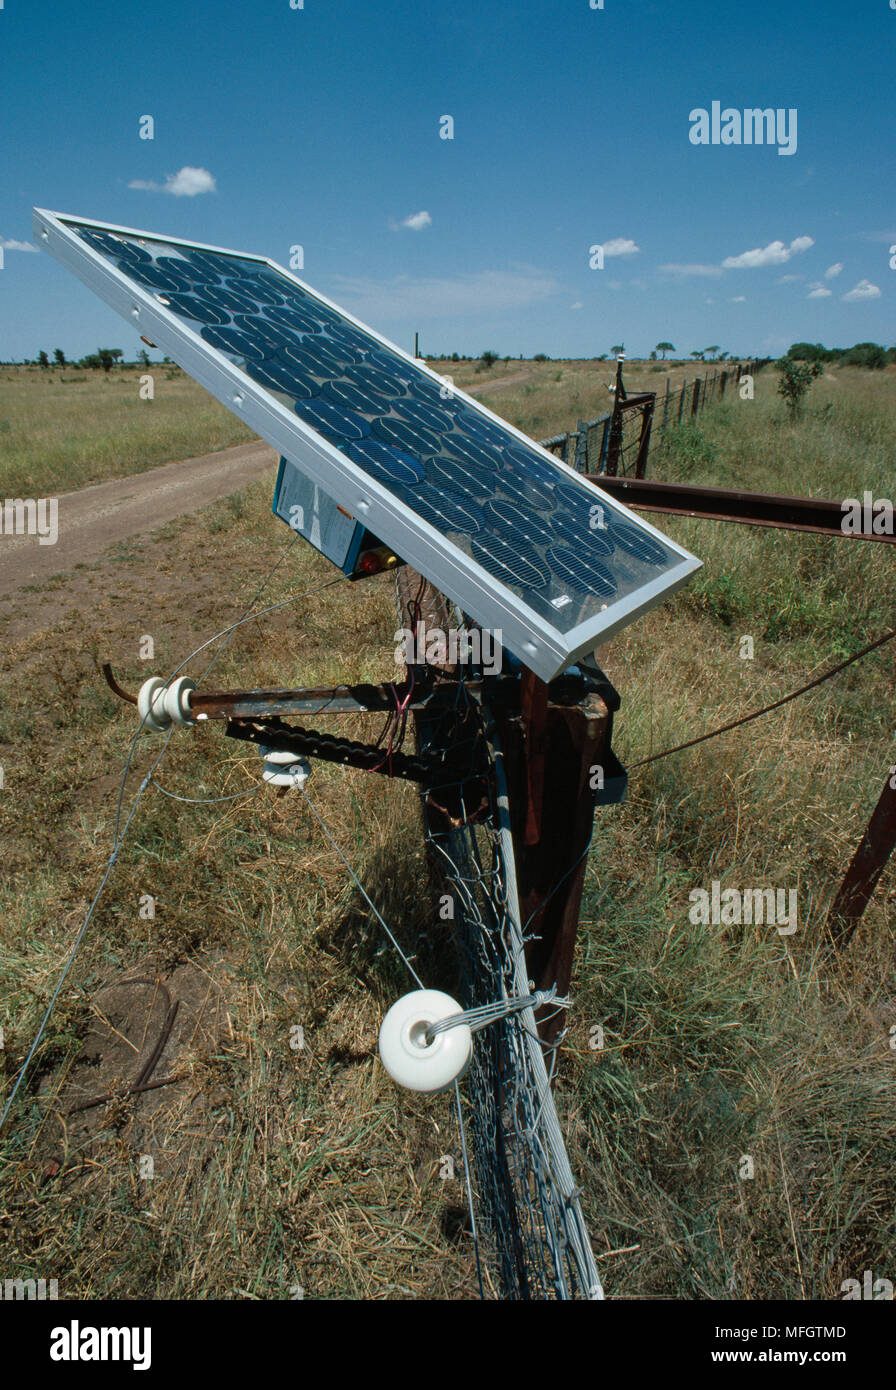 SOLAR PANEL used to power electric  fences which surround the Kruger National  Park, to stop elephants from straying into  adjoining farming areas. So - Stock Image